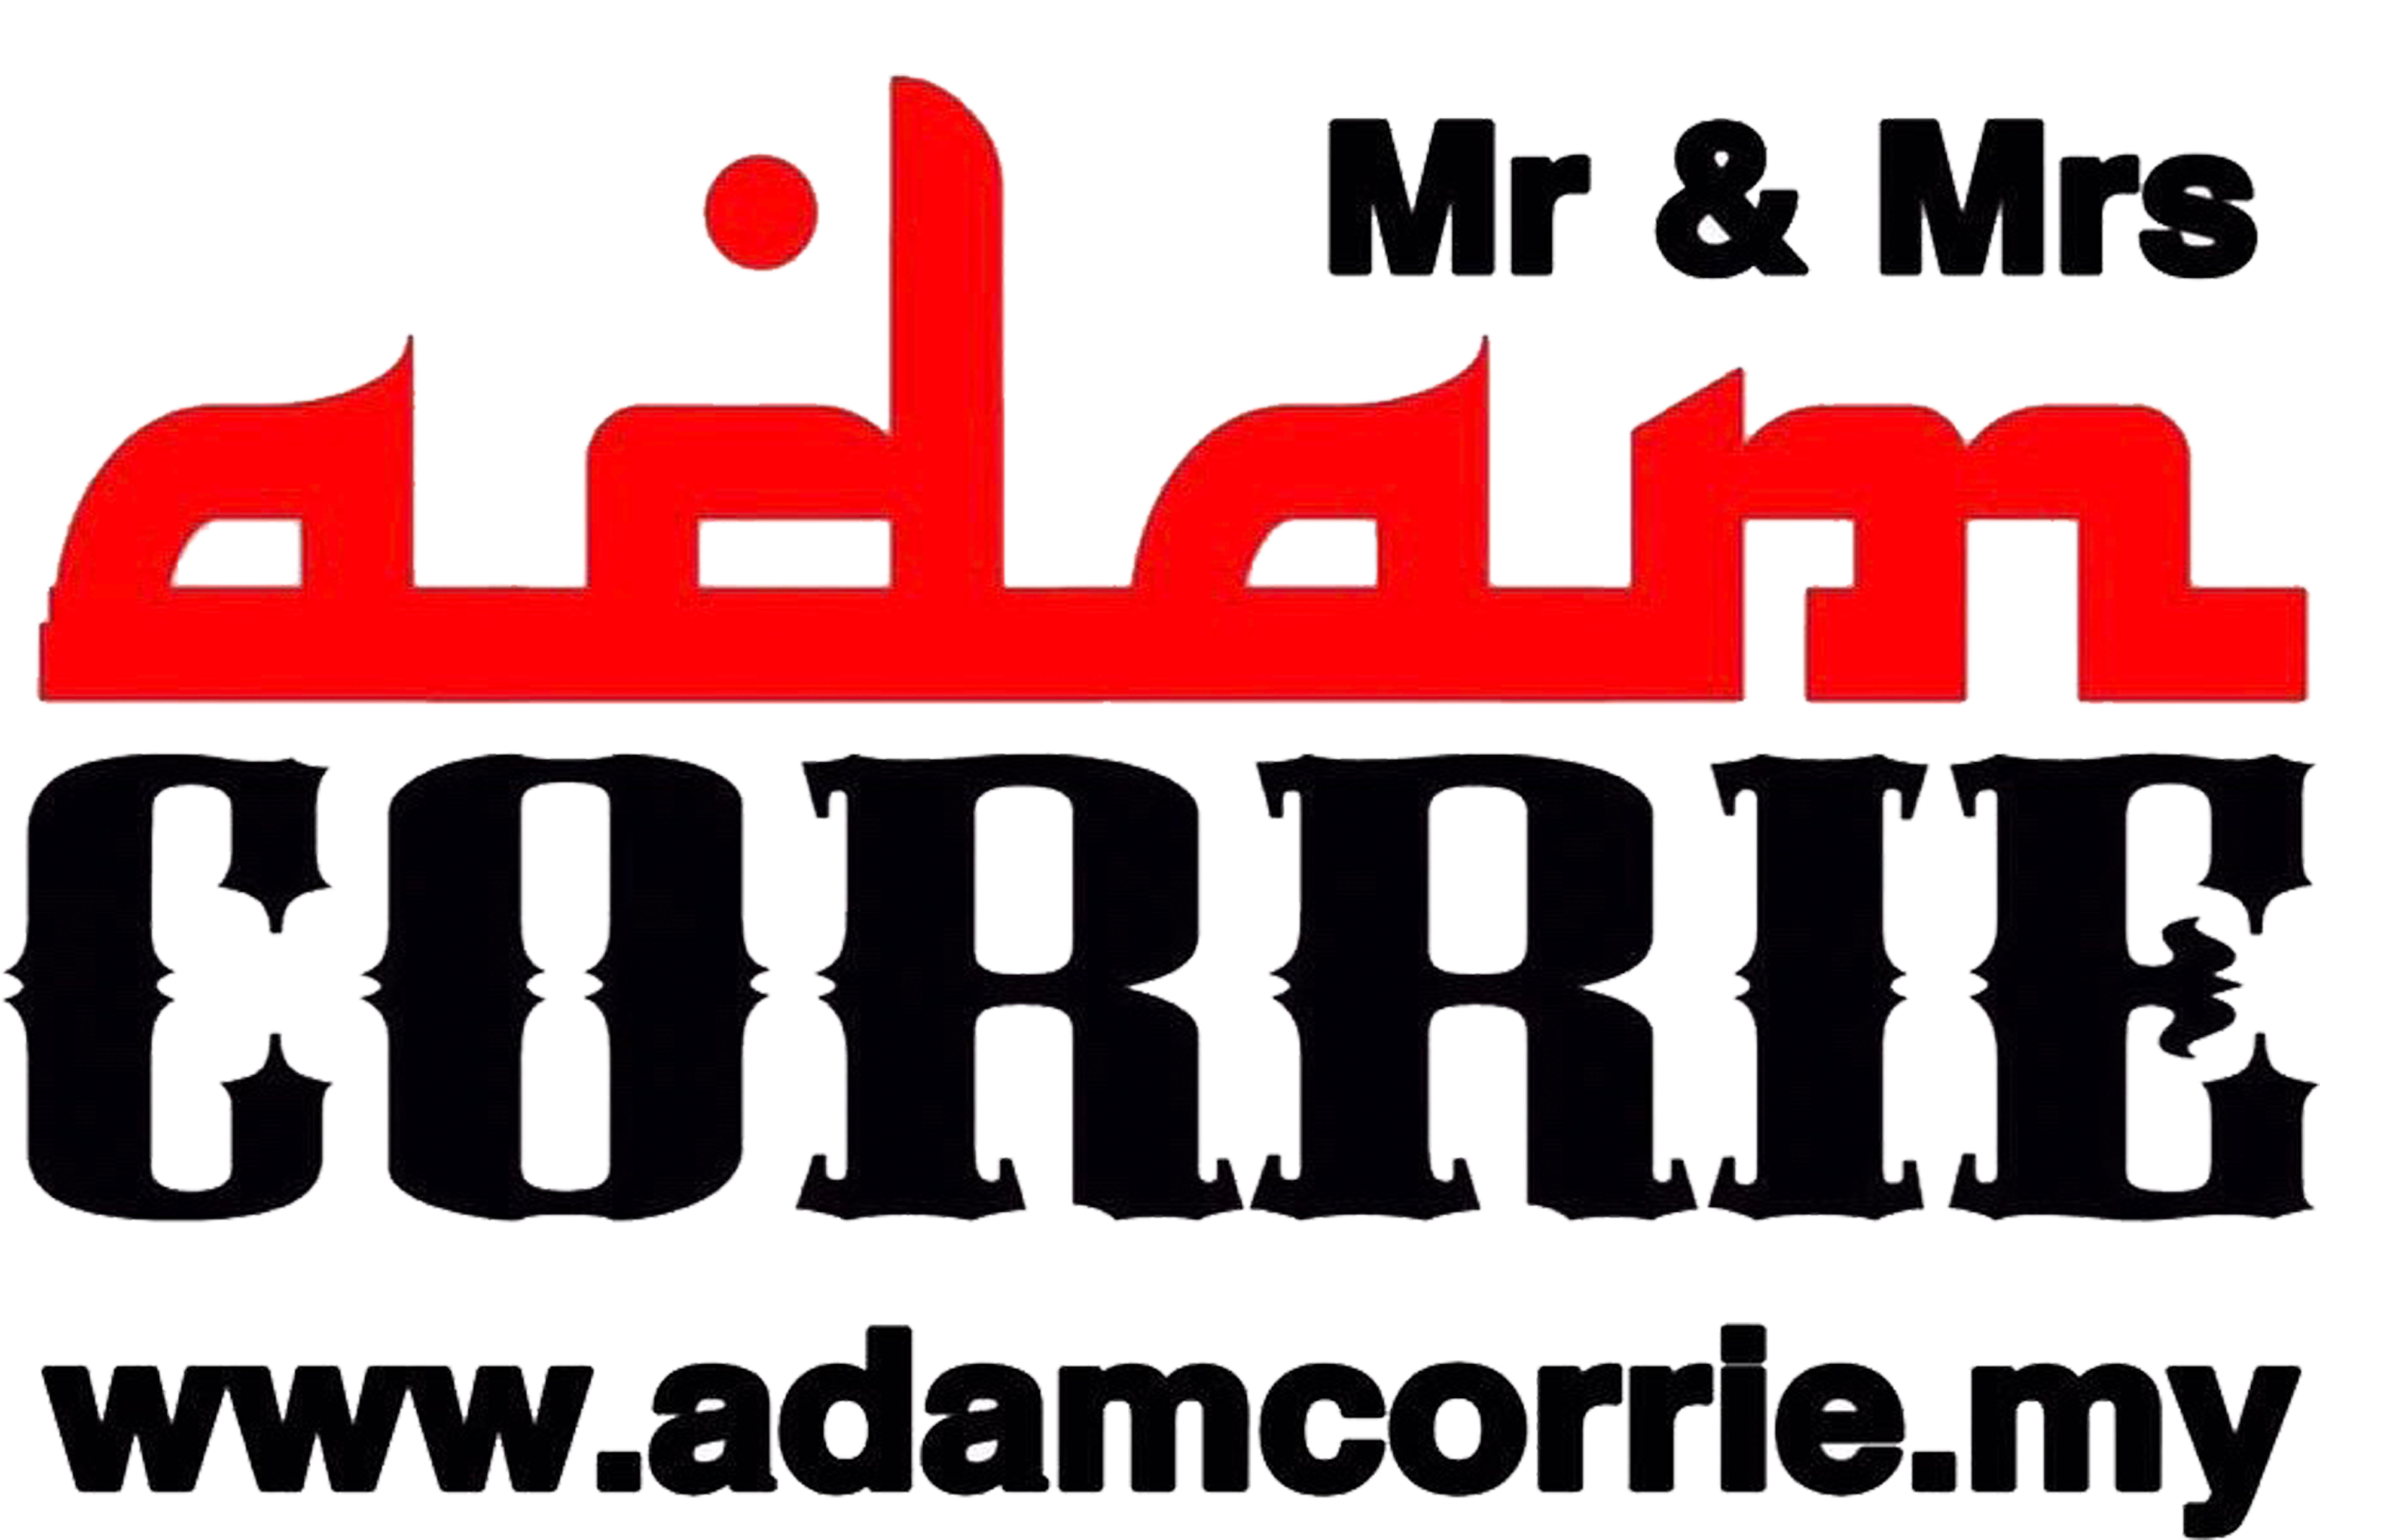 MR & MRS ADAM CORRIE